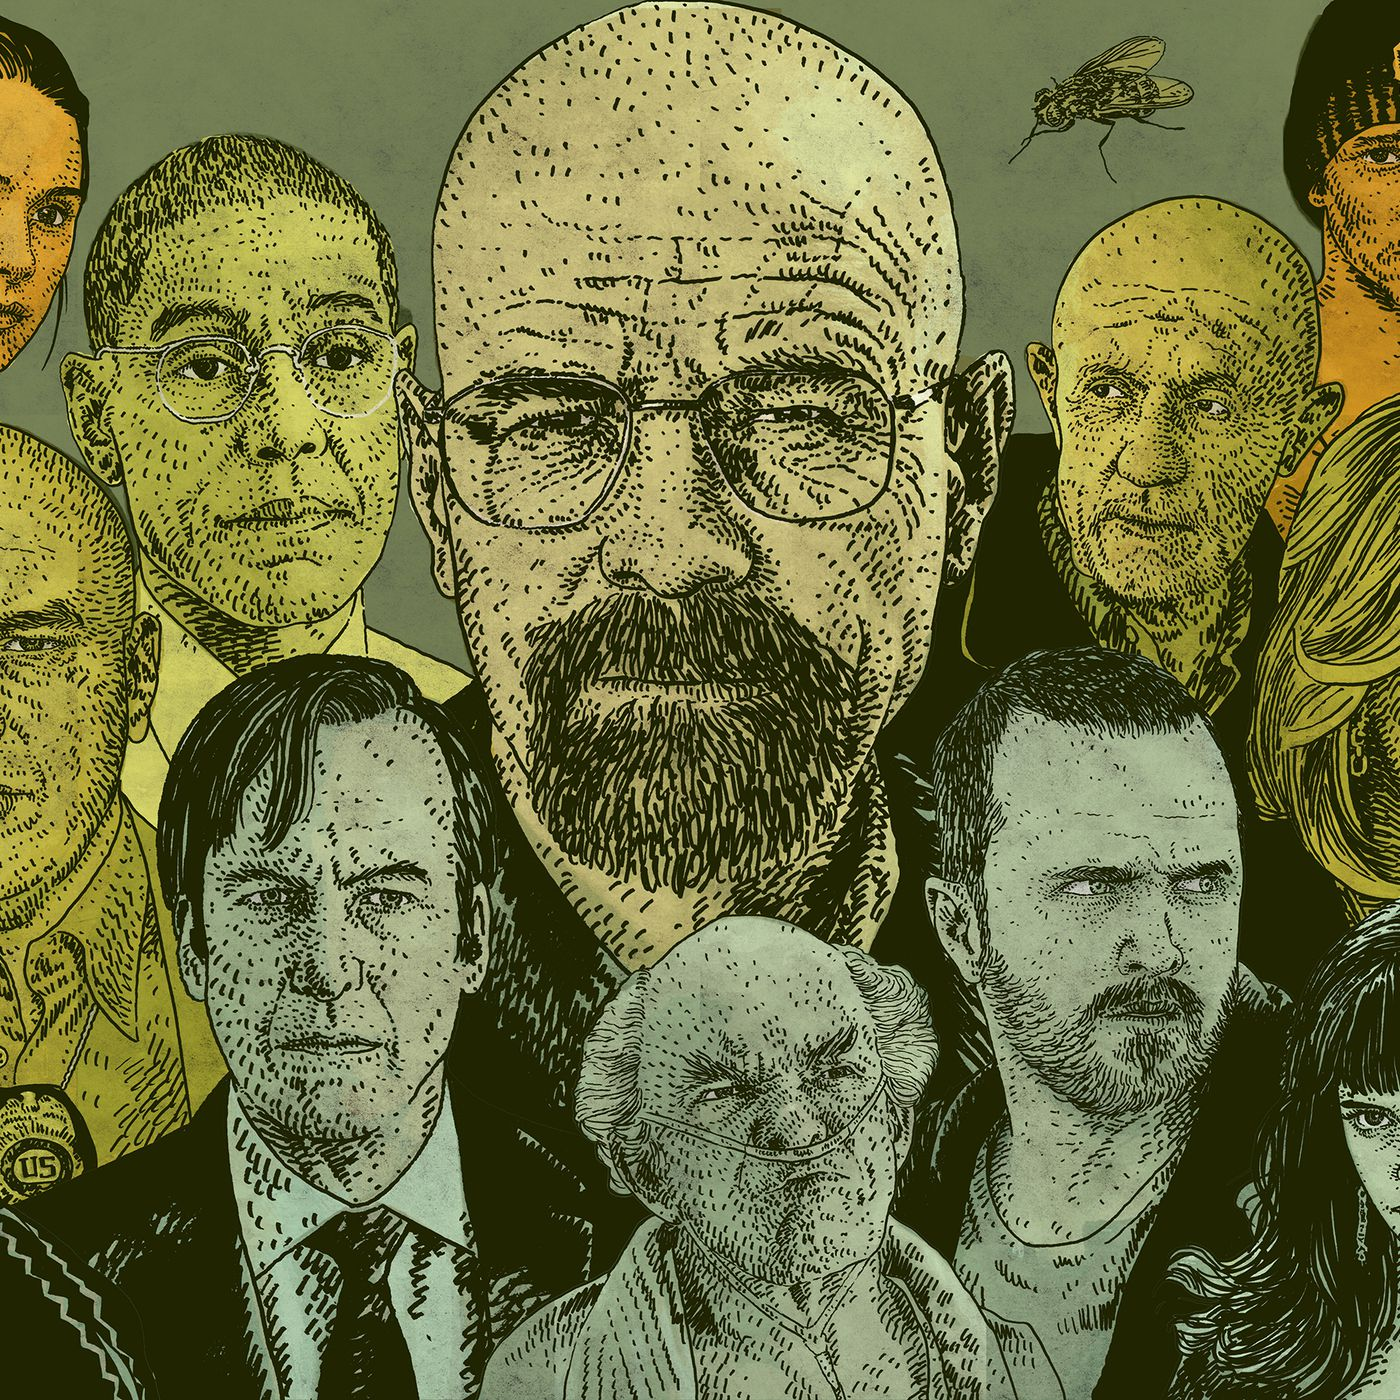 The Ringer S Definitive Breaking Bad Episodes Ranking The Ringer